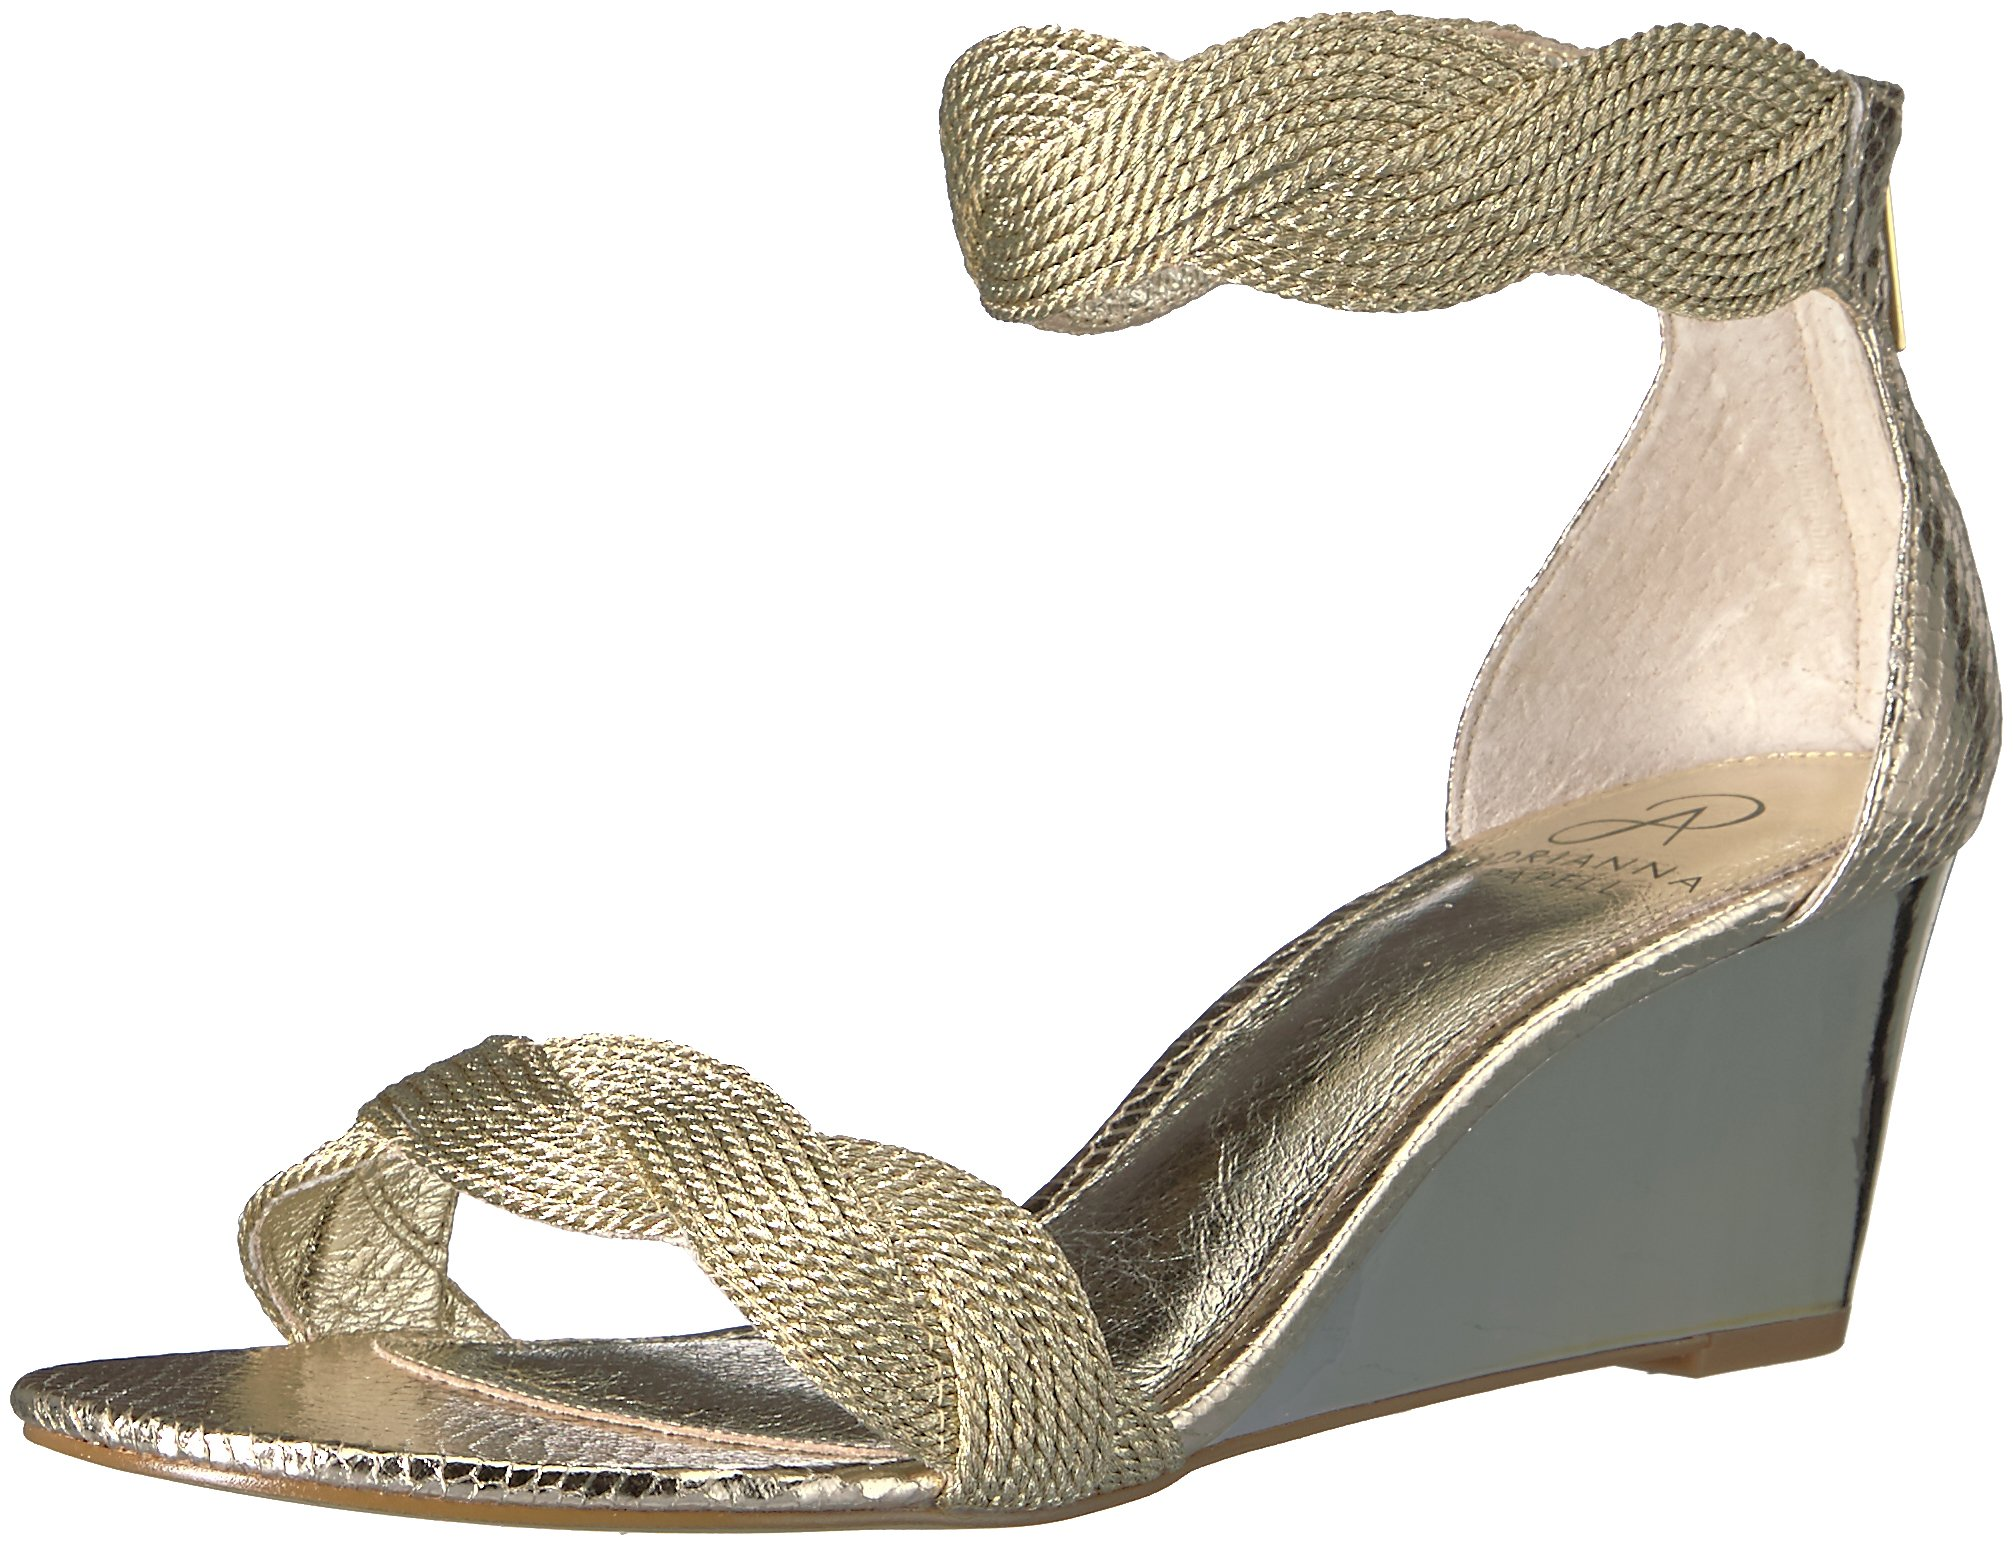 Adrianna Papell Women's Adelaide Wedge Sandal, Platino, 7.5 M US